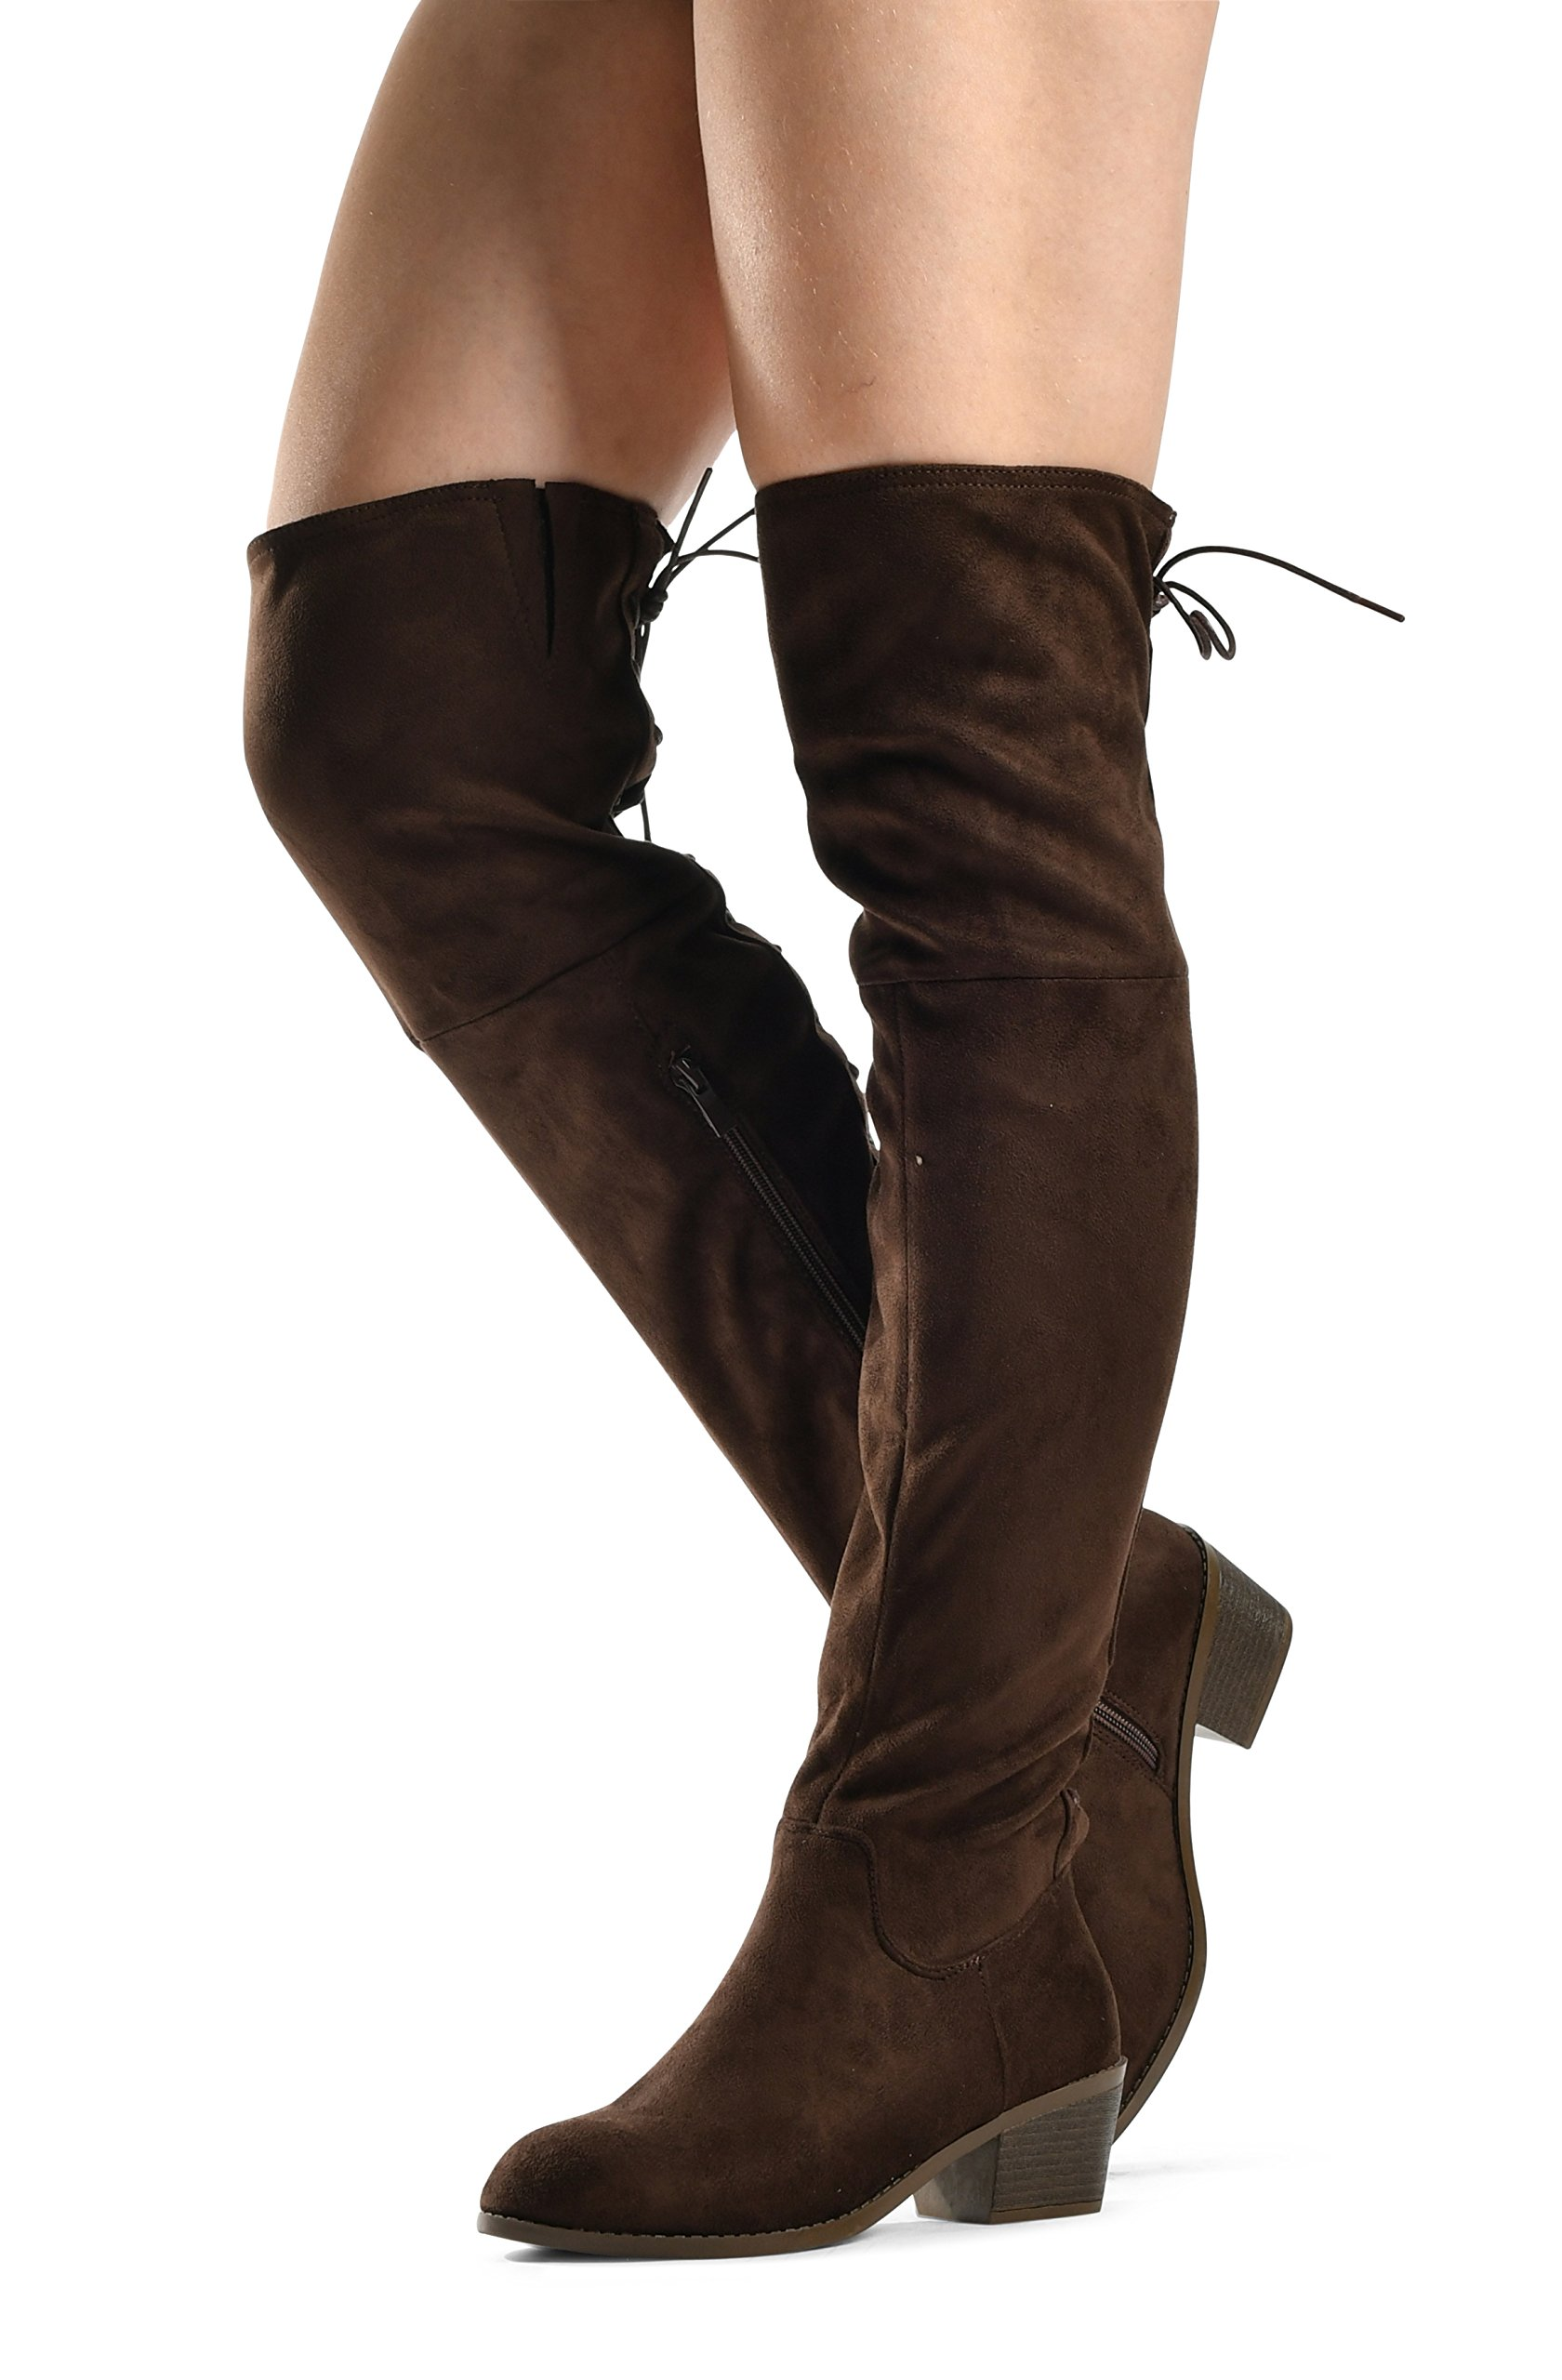 Women's Over The Knee Boots Stacked Low Heel Western Kate Lace up Almond Toe Knee High Tall Boot Brown 7.5